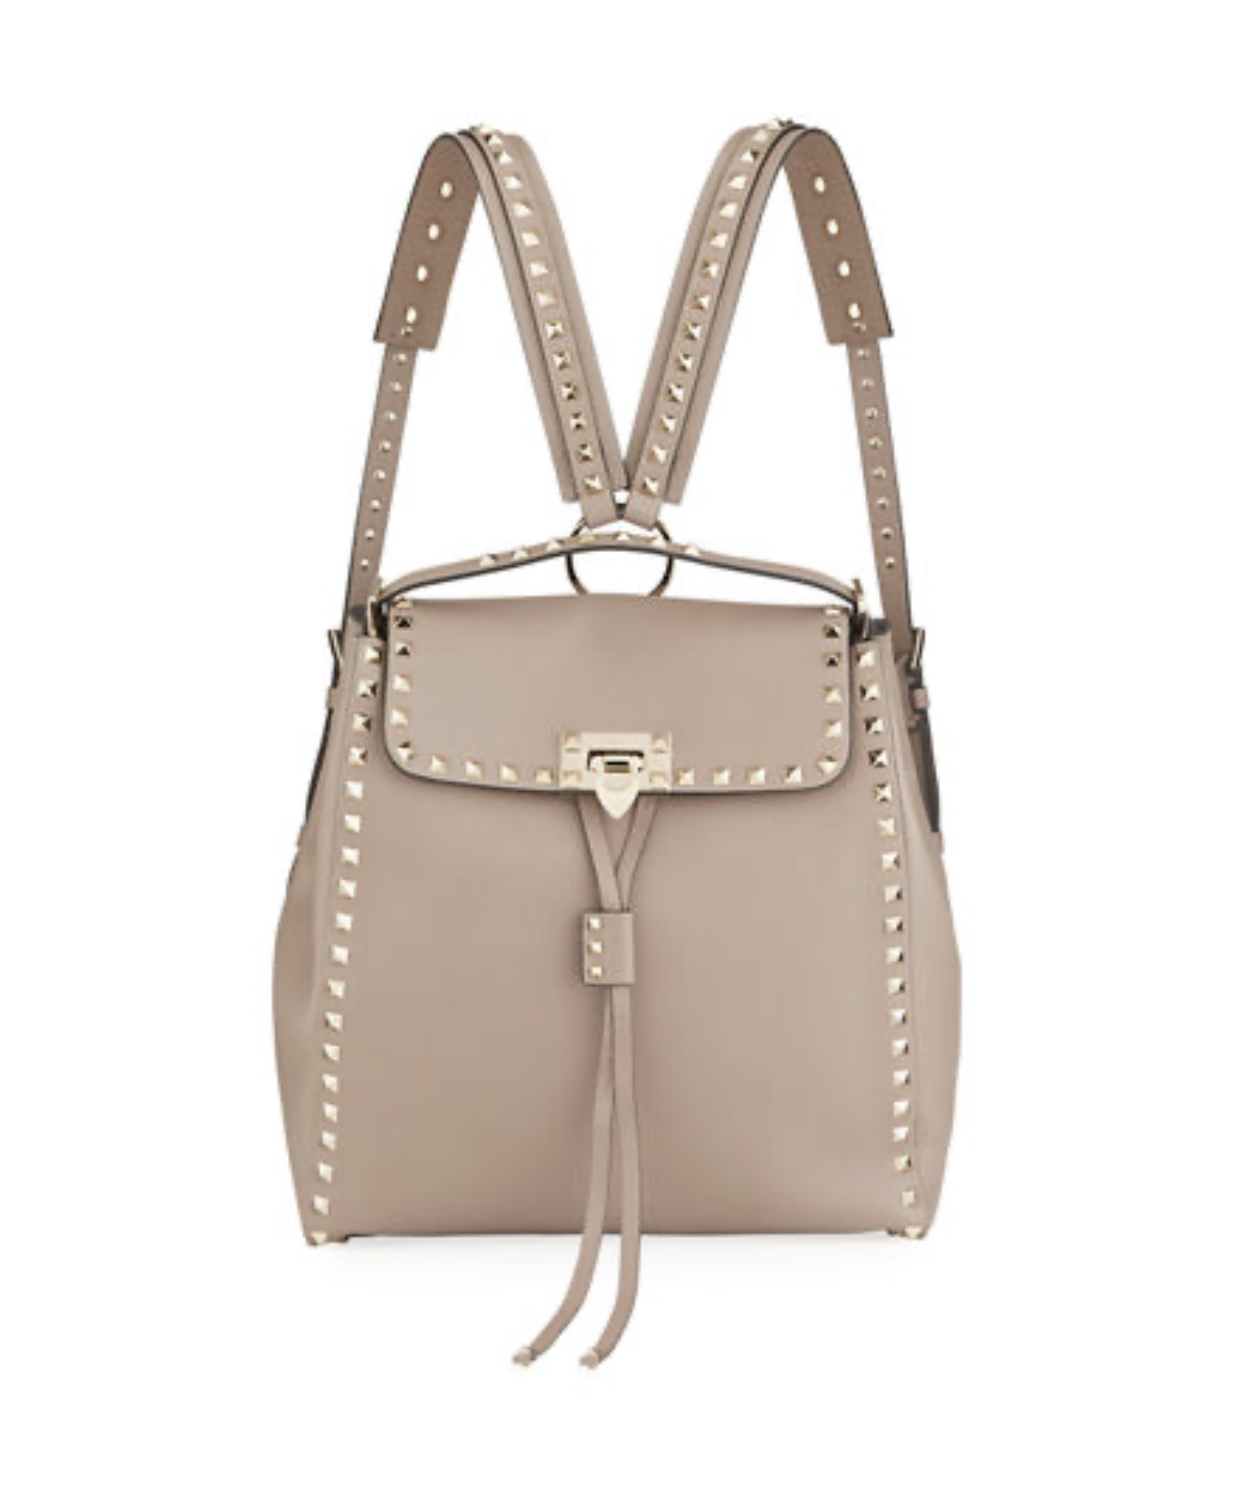 VALENTINO GARAVANI Rockstud Vitello Stampa Backpack